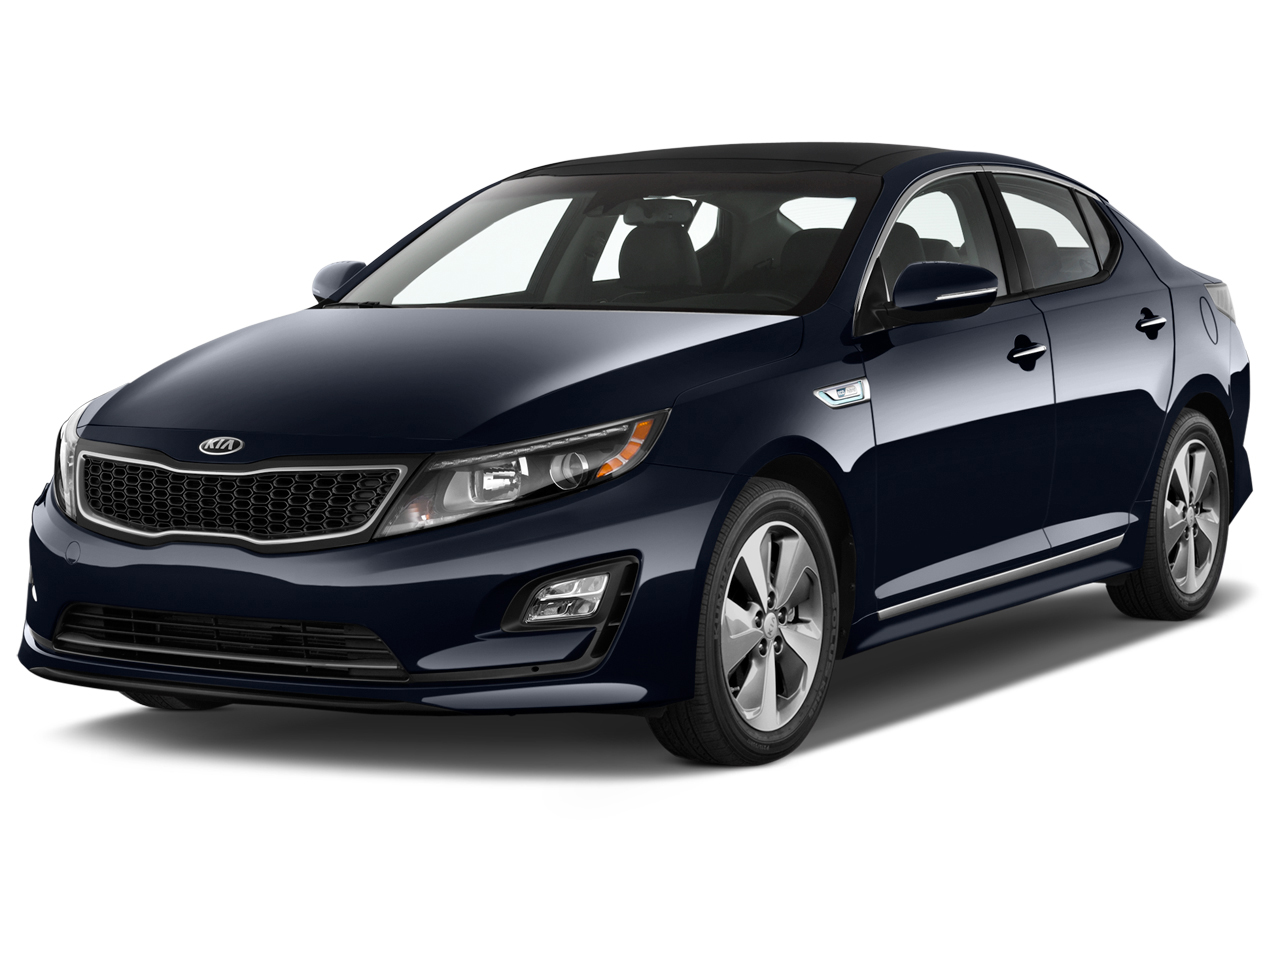 2016 kia optima hybrid review ratings specs prices and photos the car connection. Black Bedroom Furniture Sets. Home Design Ideas